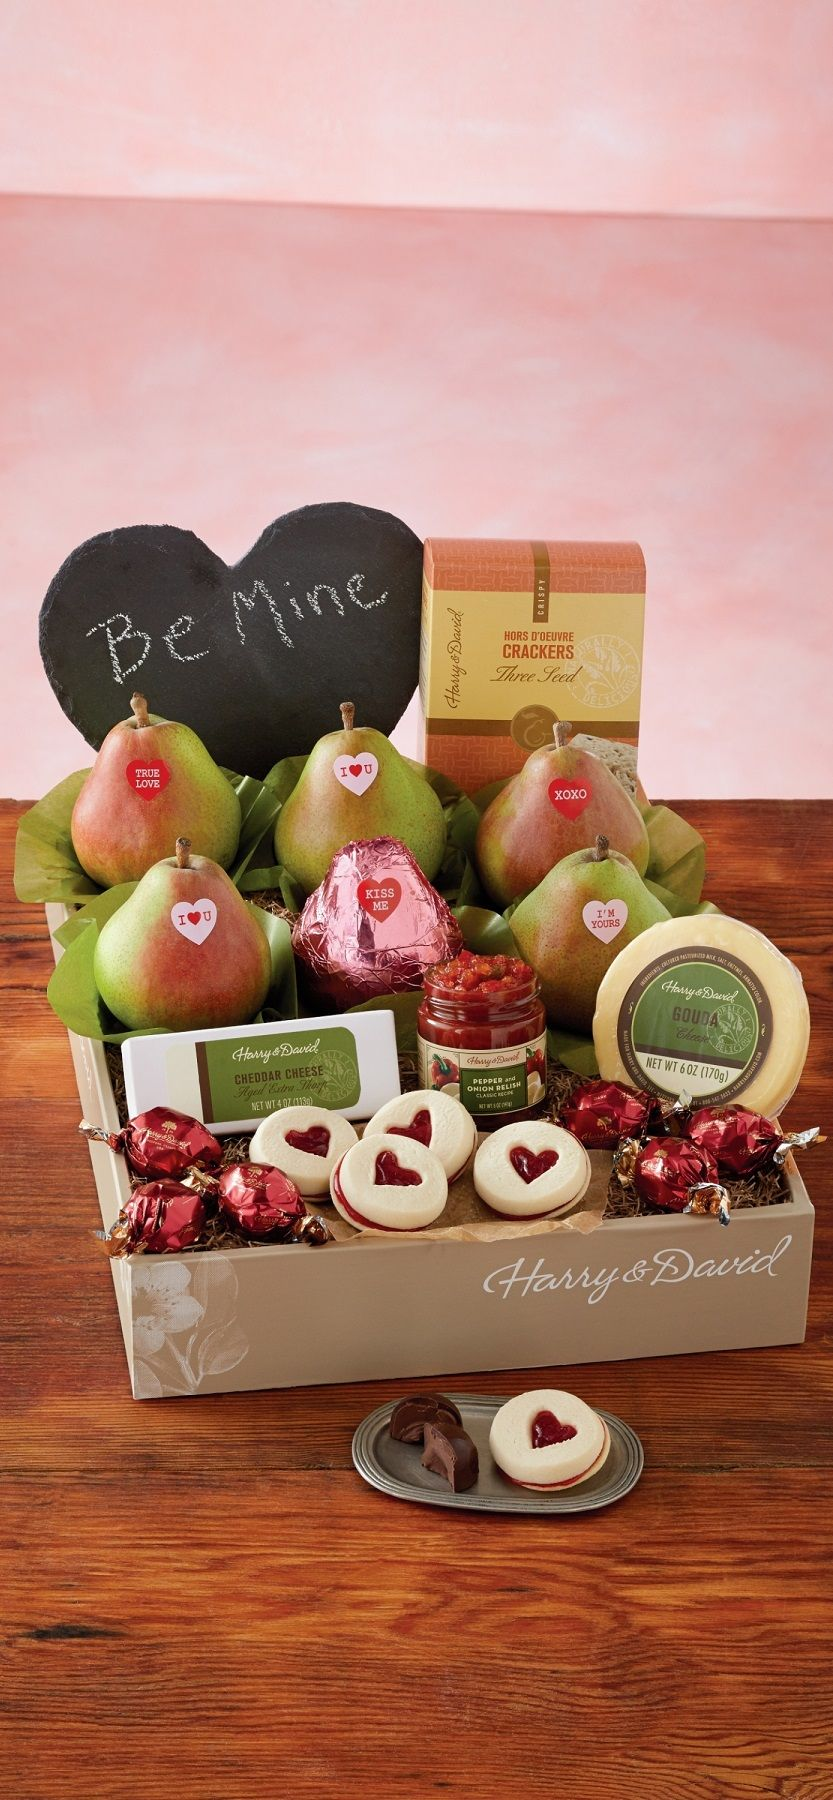 Delight your darling with something special this valentine